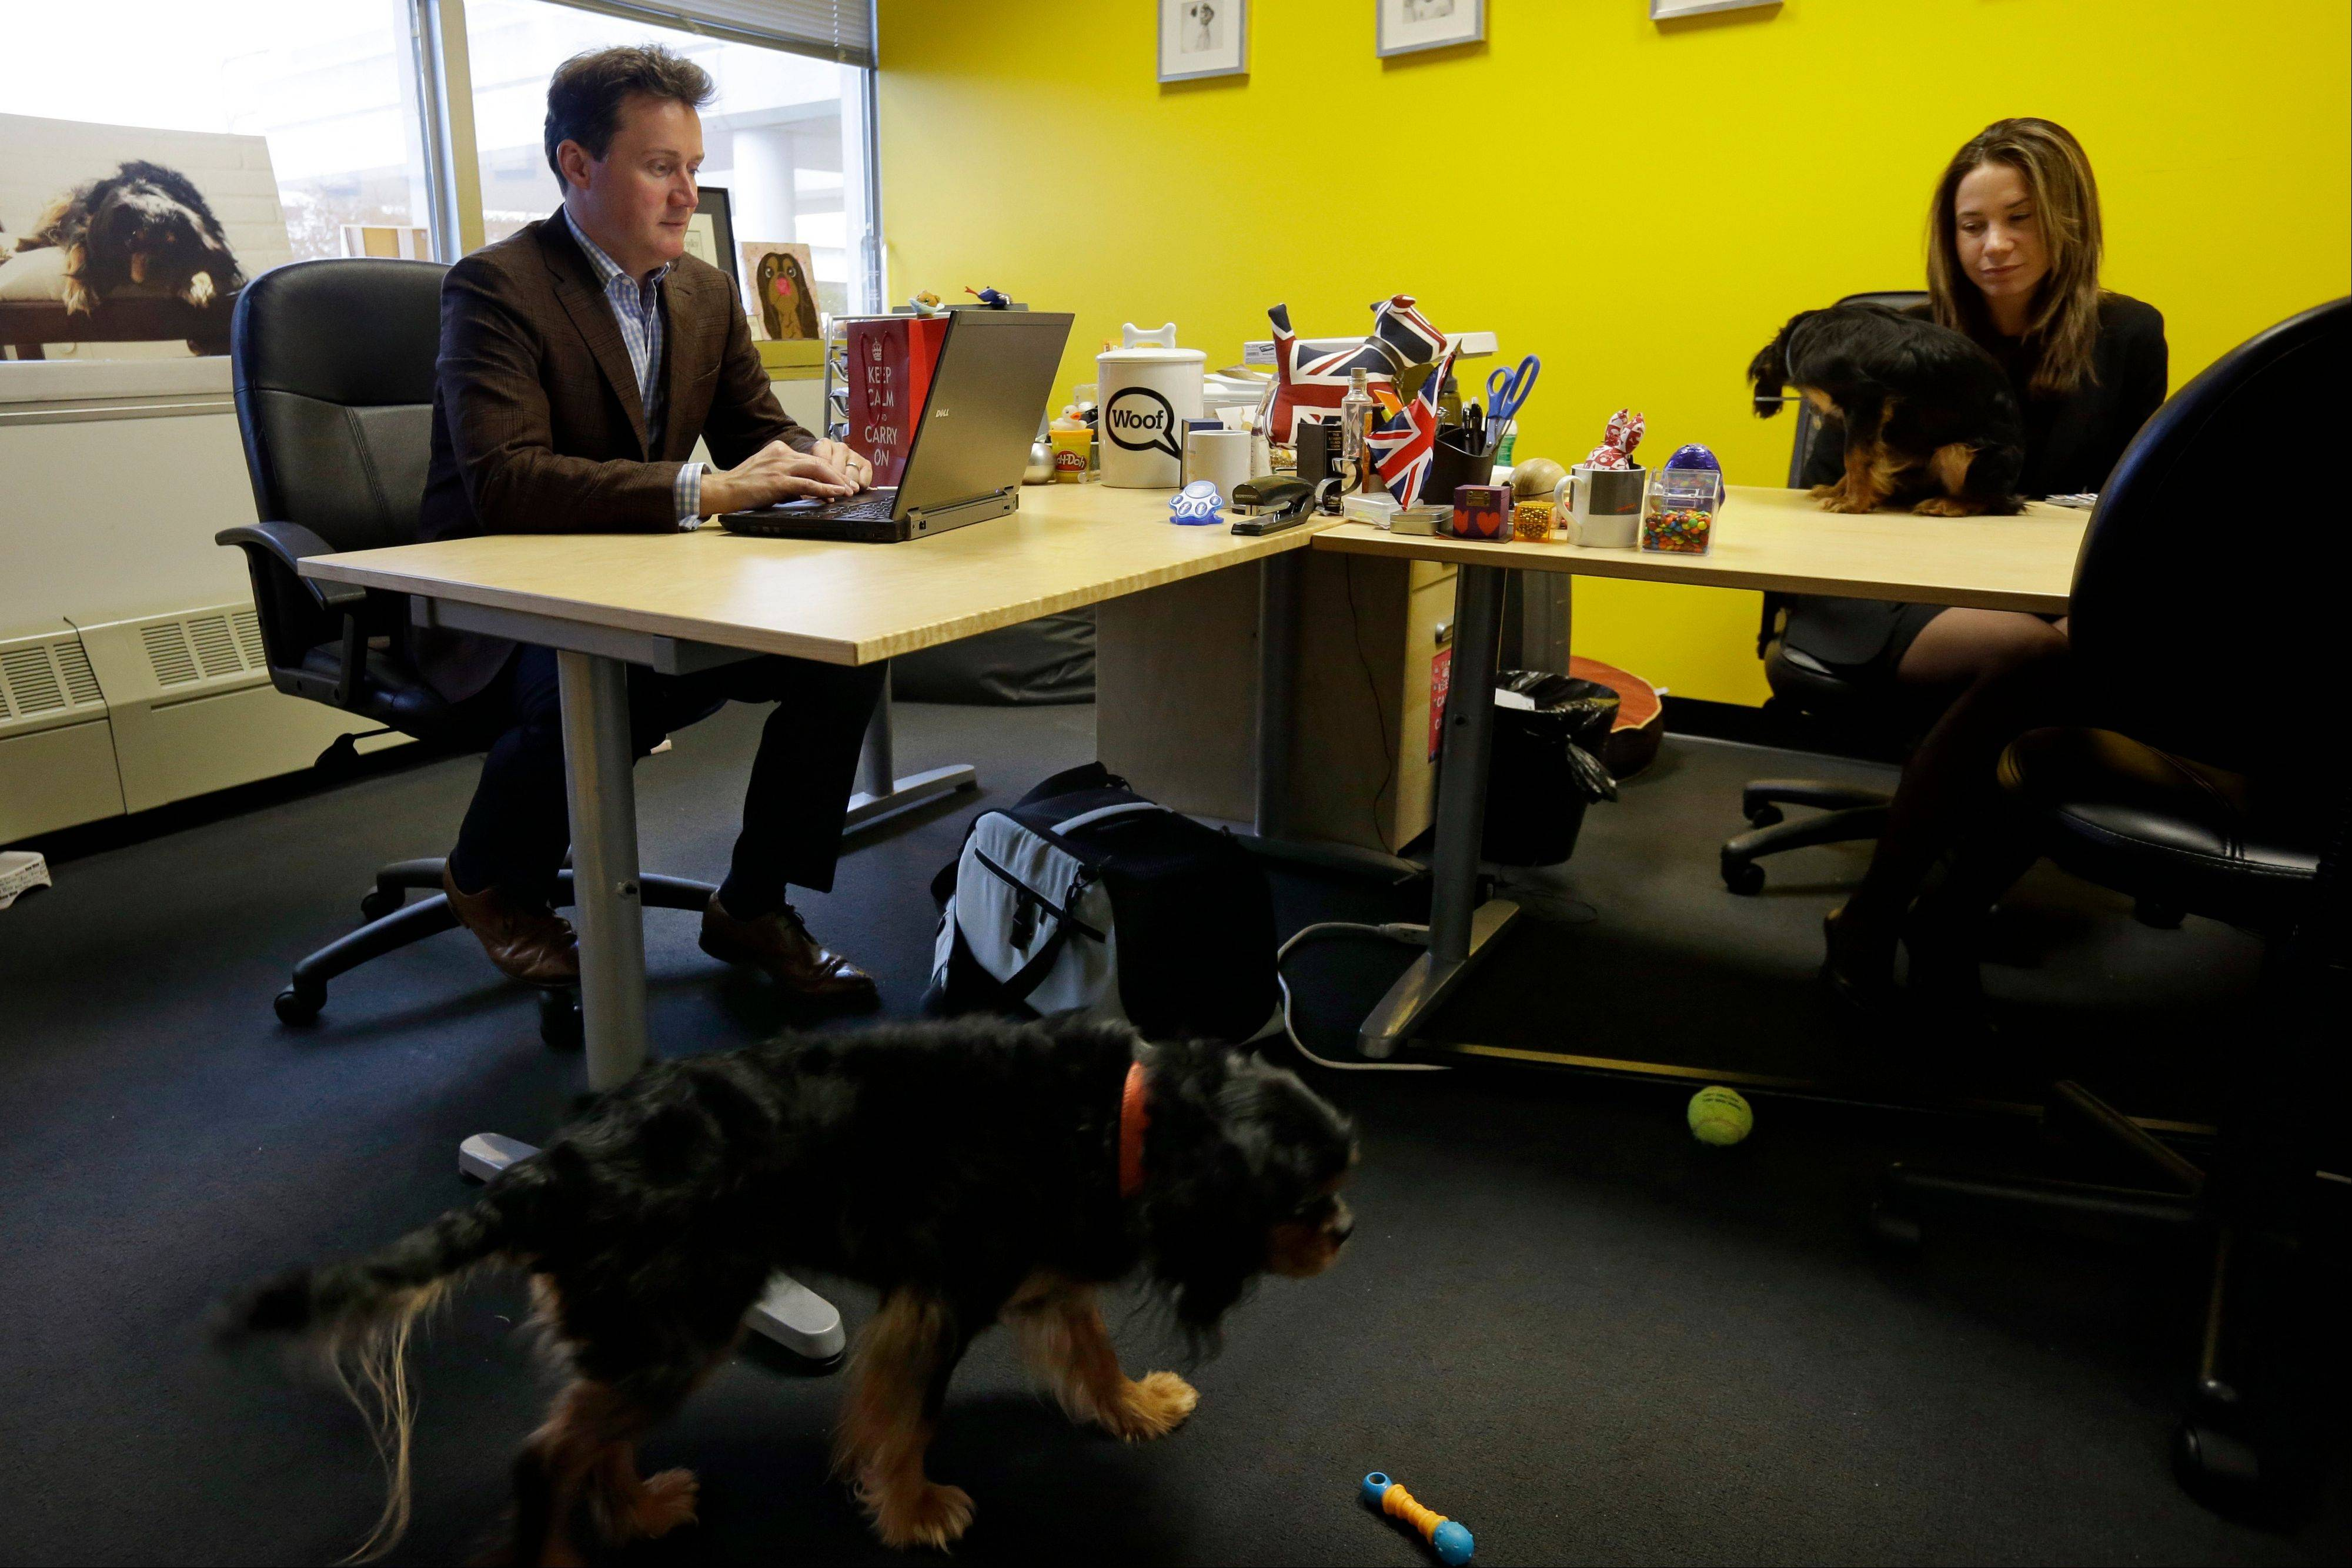 Chris and Natasha Ashton, owners of Petplan, work in the offices of their pet insurance company, in Philadelphia.